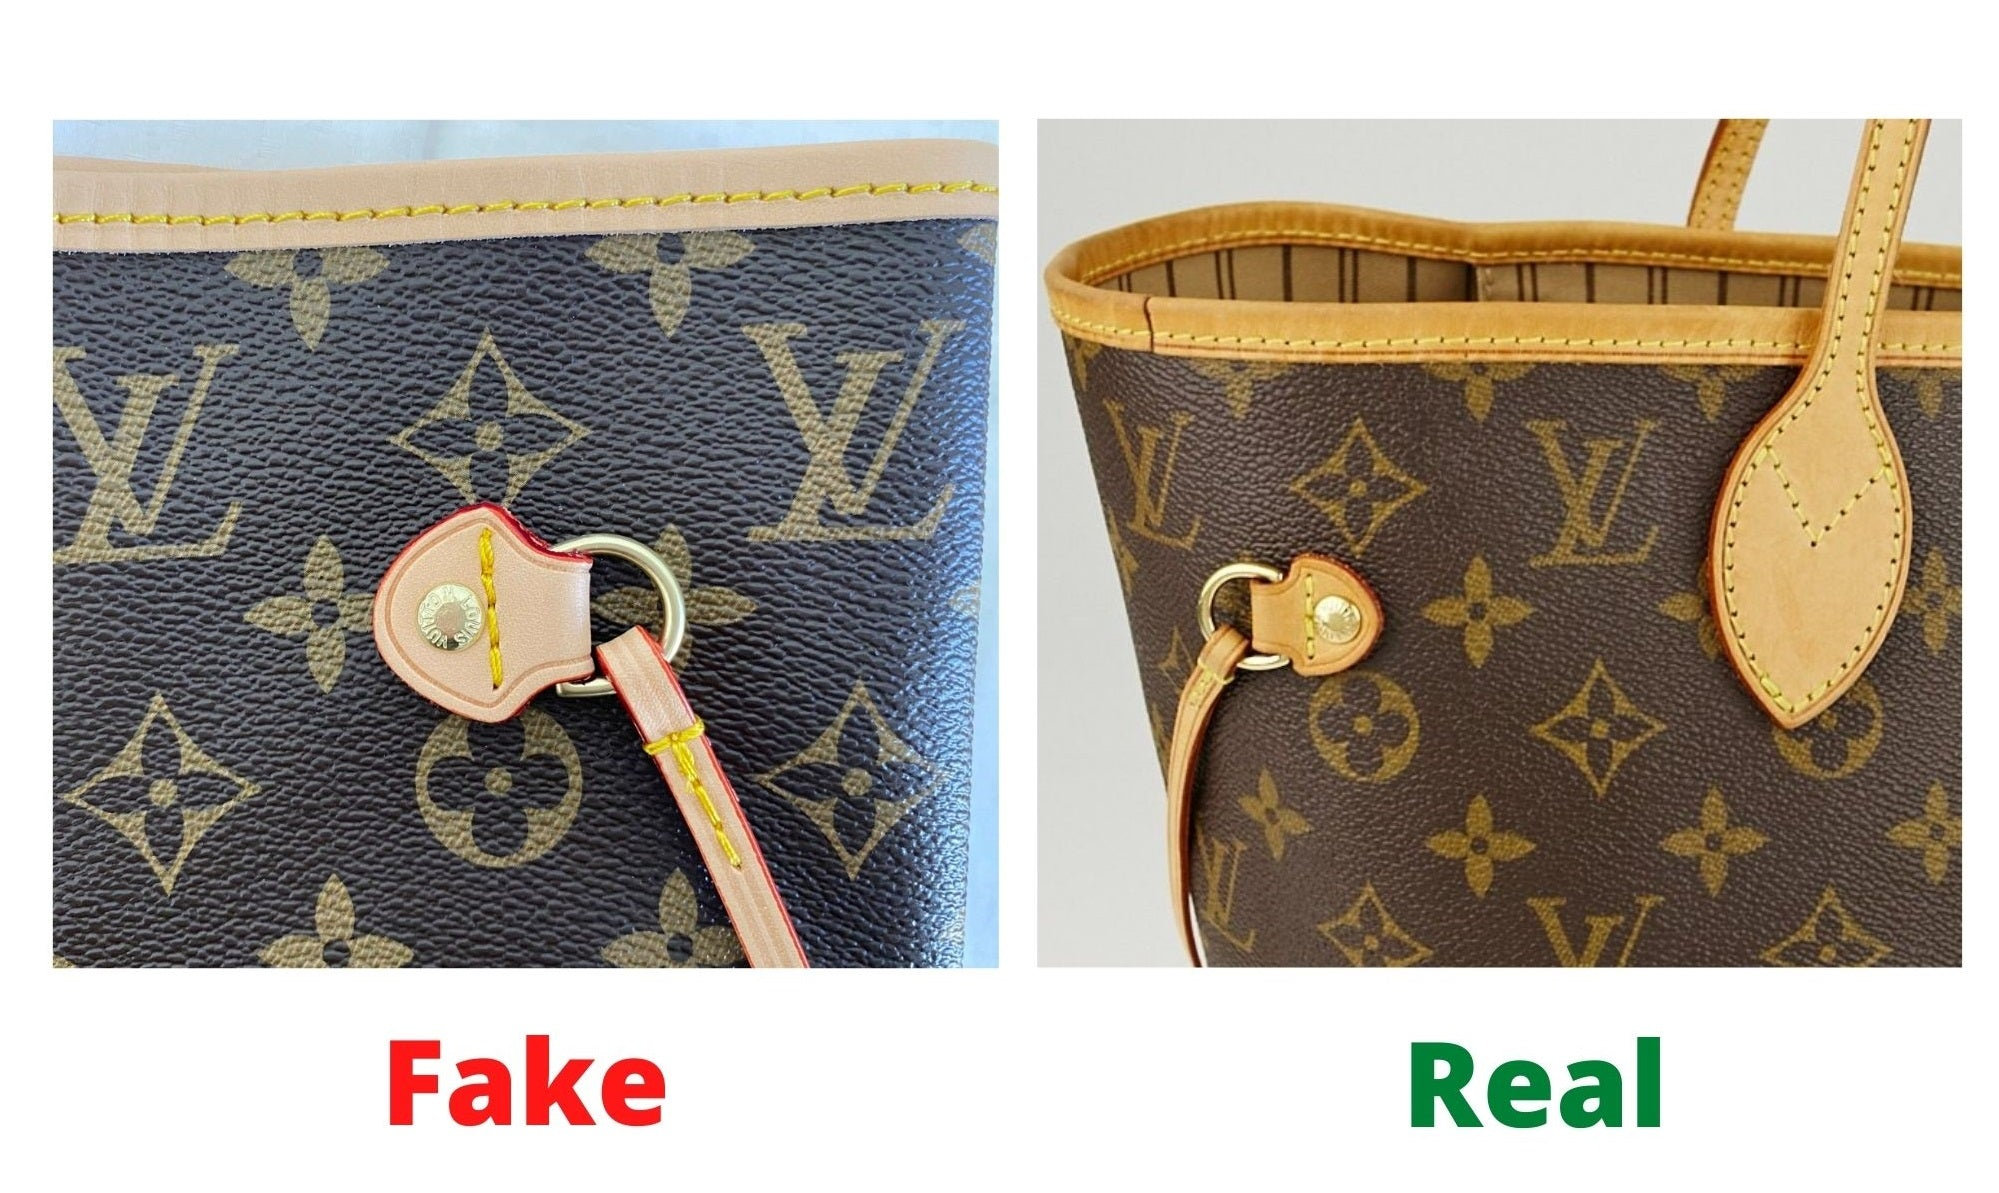 ake Louis Vuitton Neverfull vs Real: Important Details You Should Definitely Pay Attention To (With Photo Examples) Neverfull real vs fake leather element